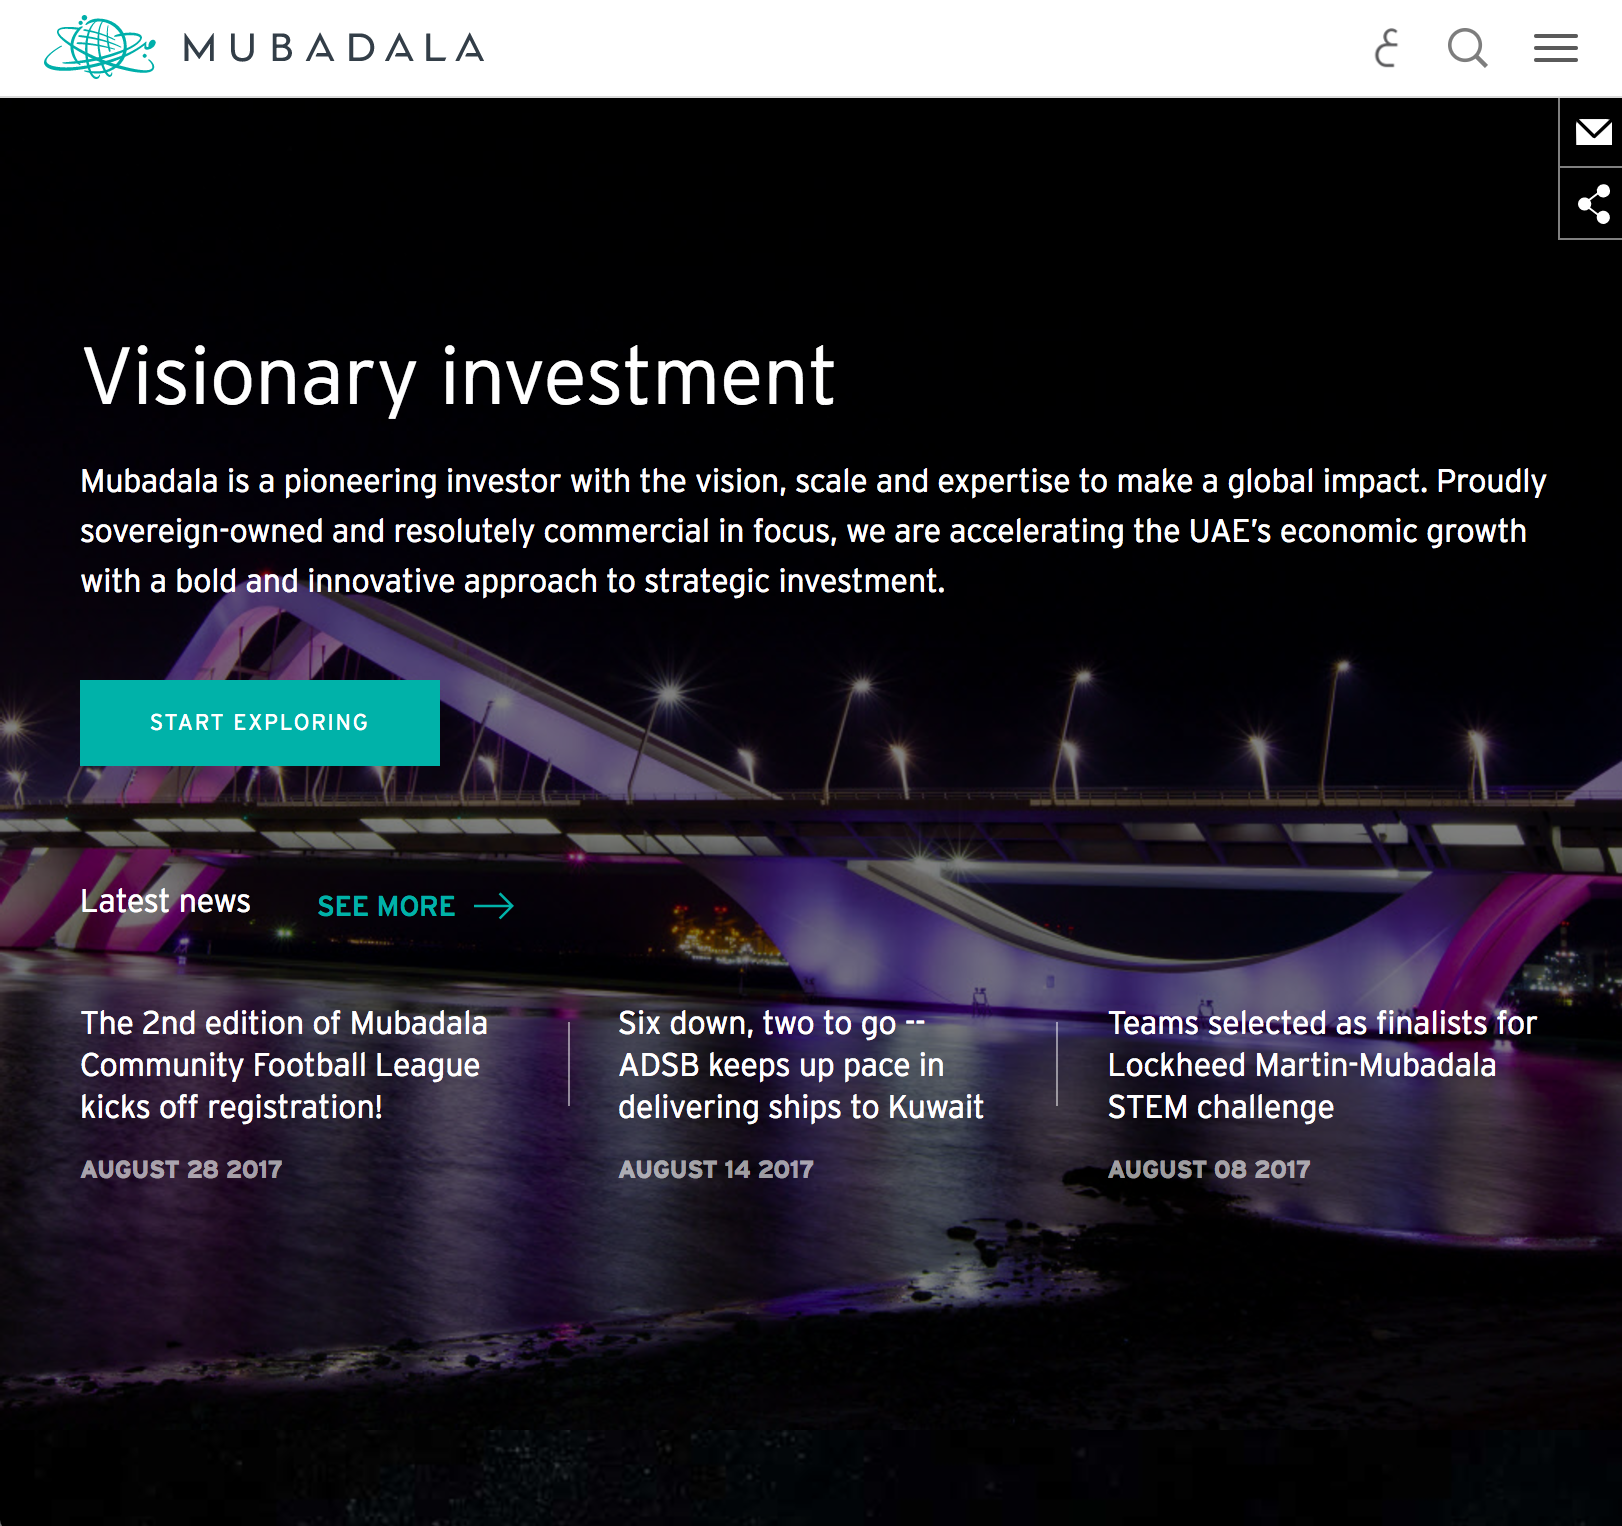 Mubadala Corporate Website image